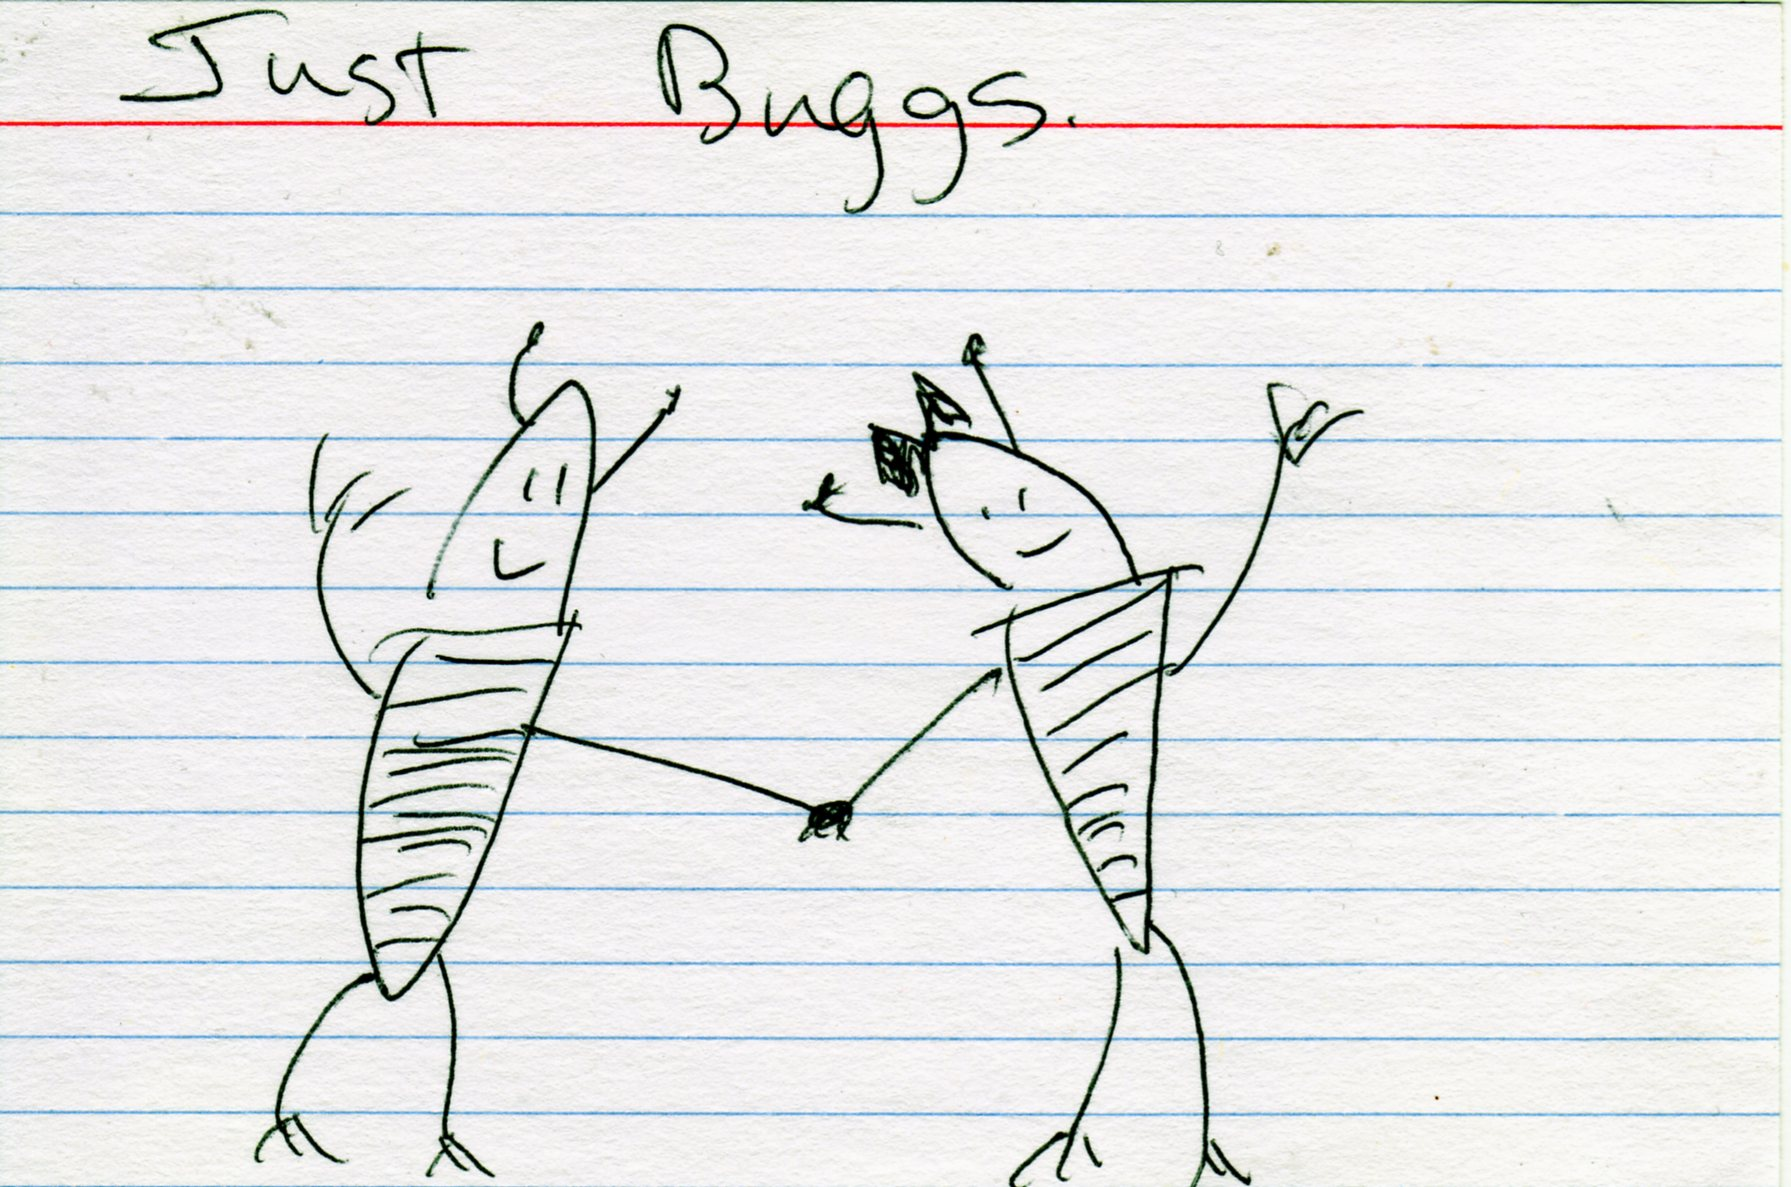 just buggs [click to embiggen]